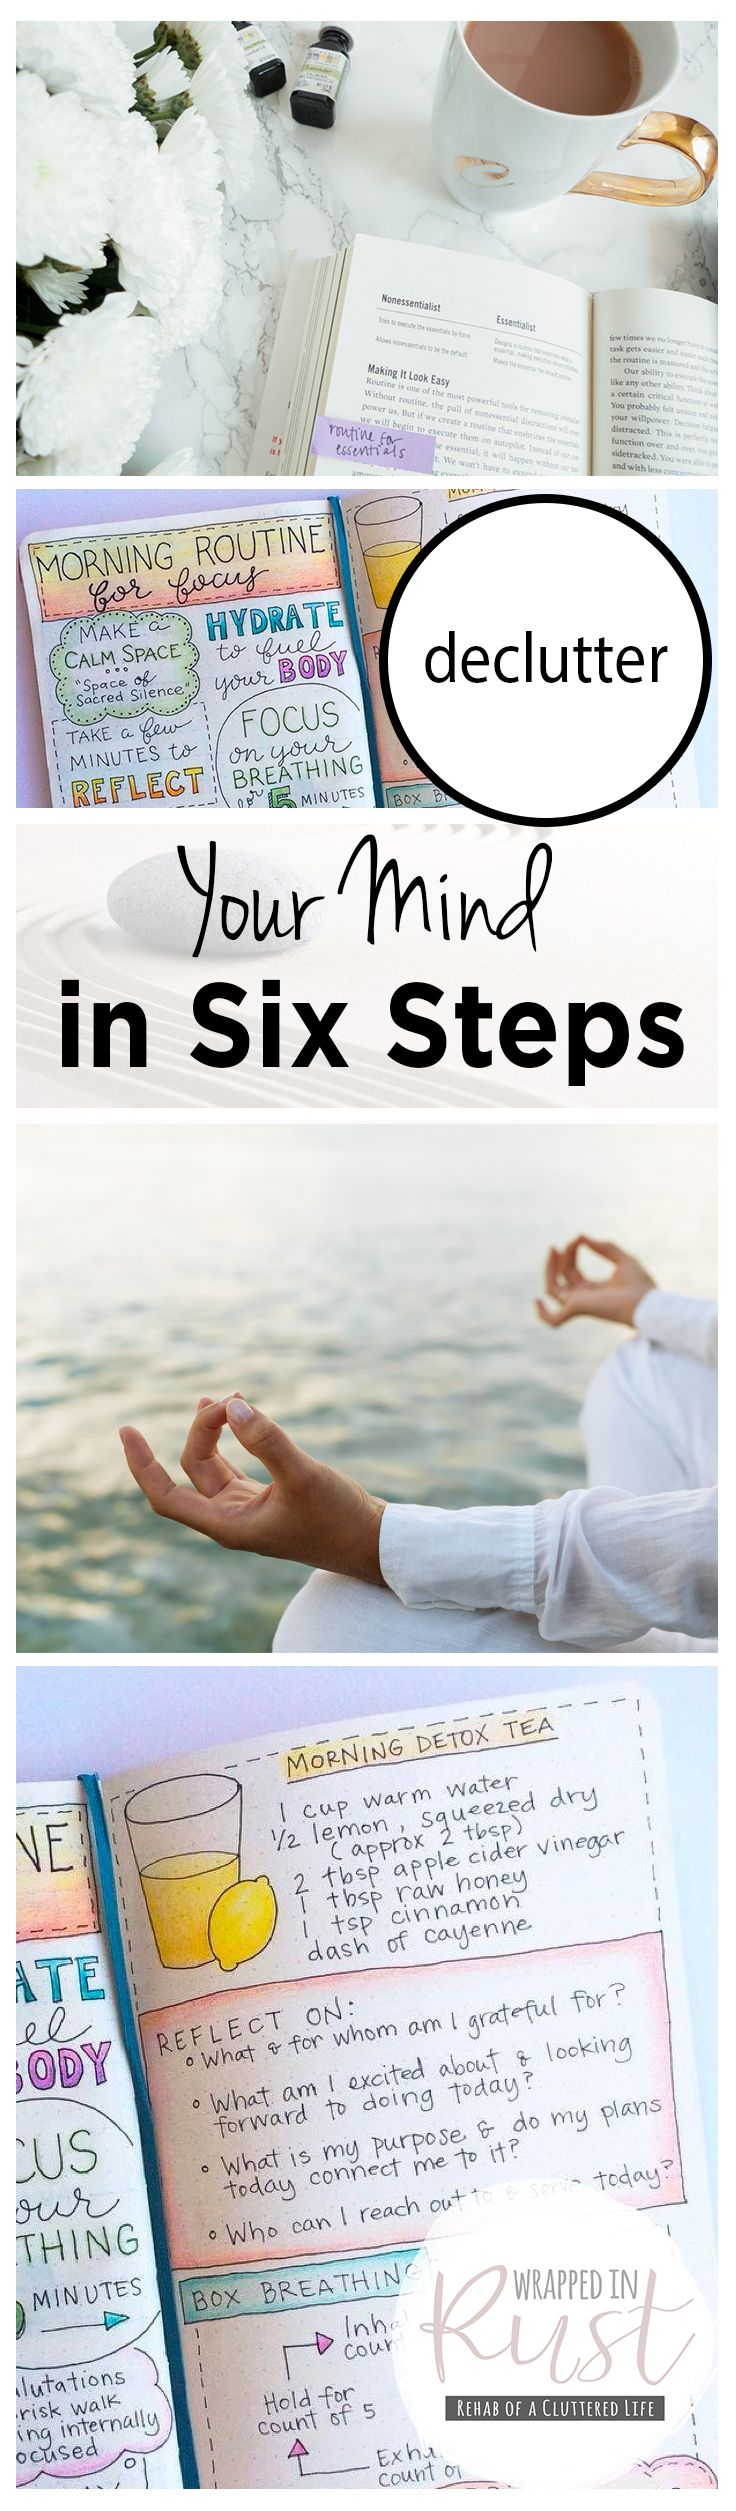 Declutter Your Mind in Six Steps| Declutter Your Mind, Declutter Your Life, Cleaning Tips and Tricks, Clean Your Life, How to Clean and Organize Your Life, Organization Tips and Tricks, Popular Pin